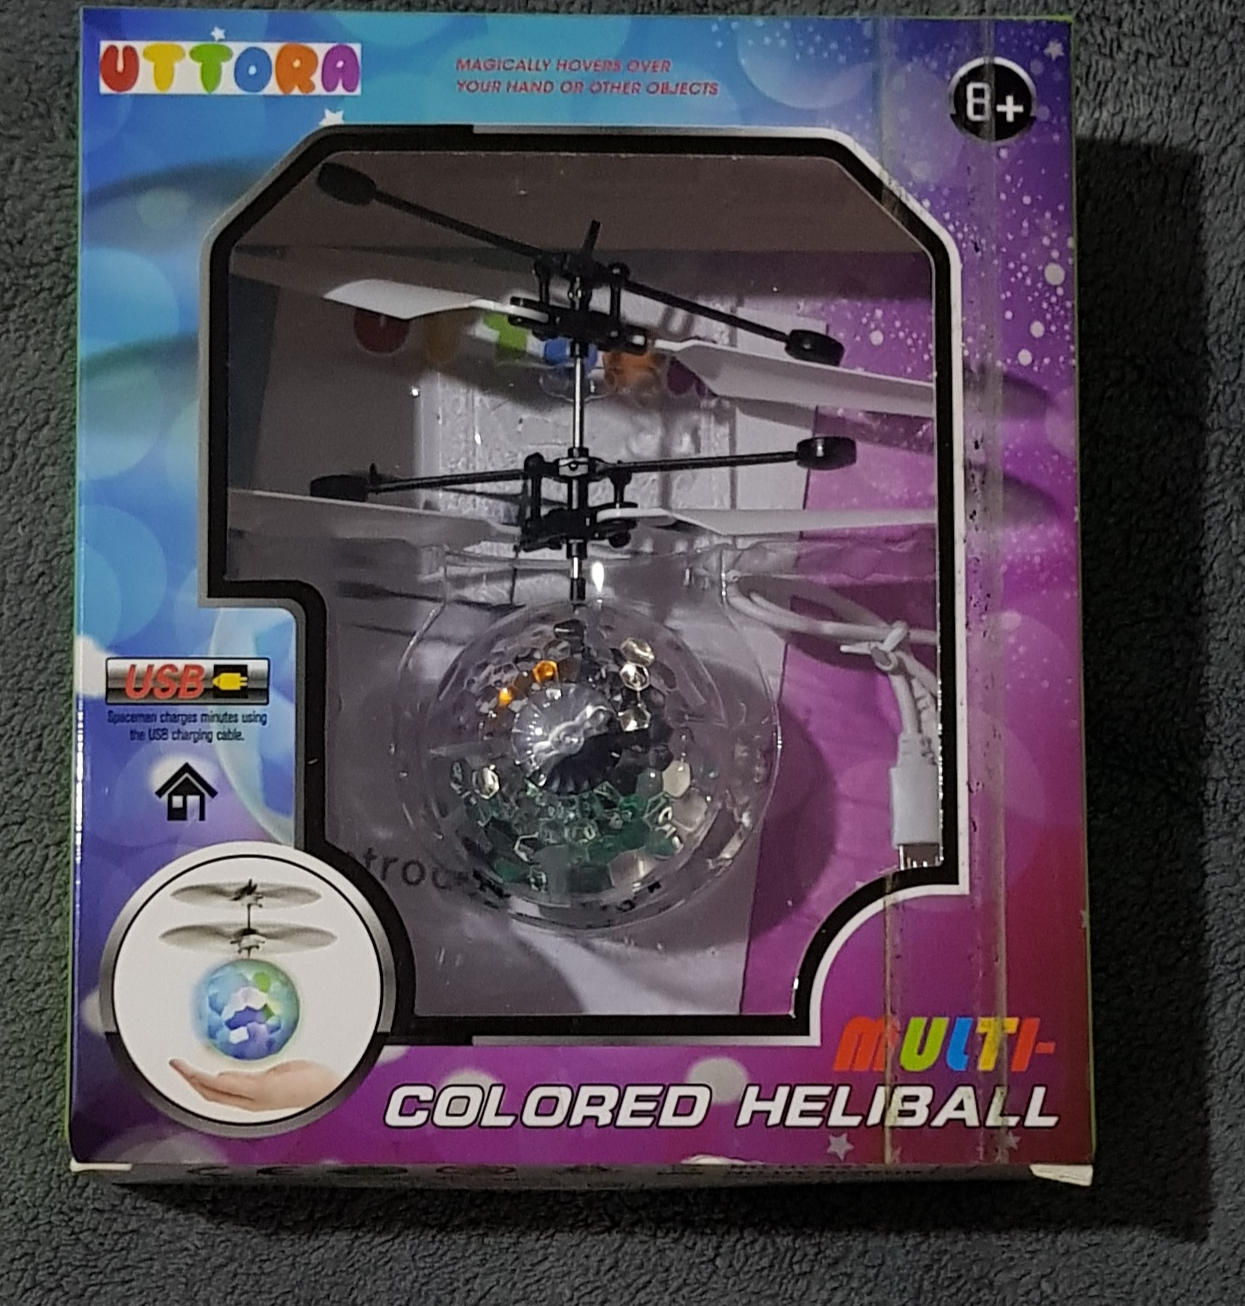 Flying led high flyer ball